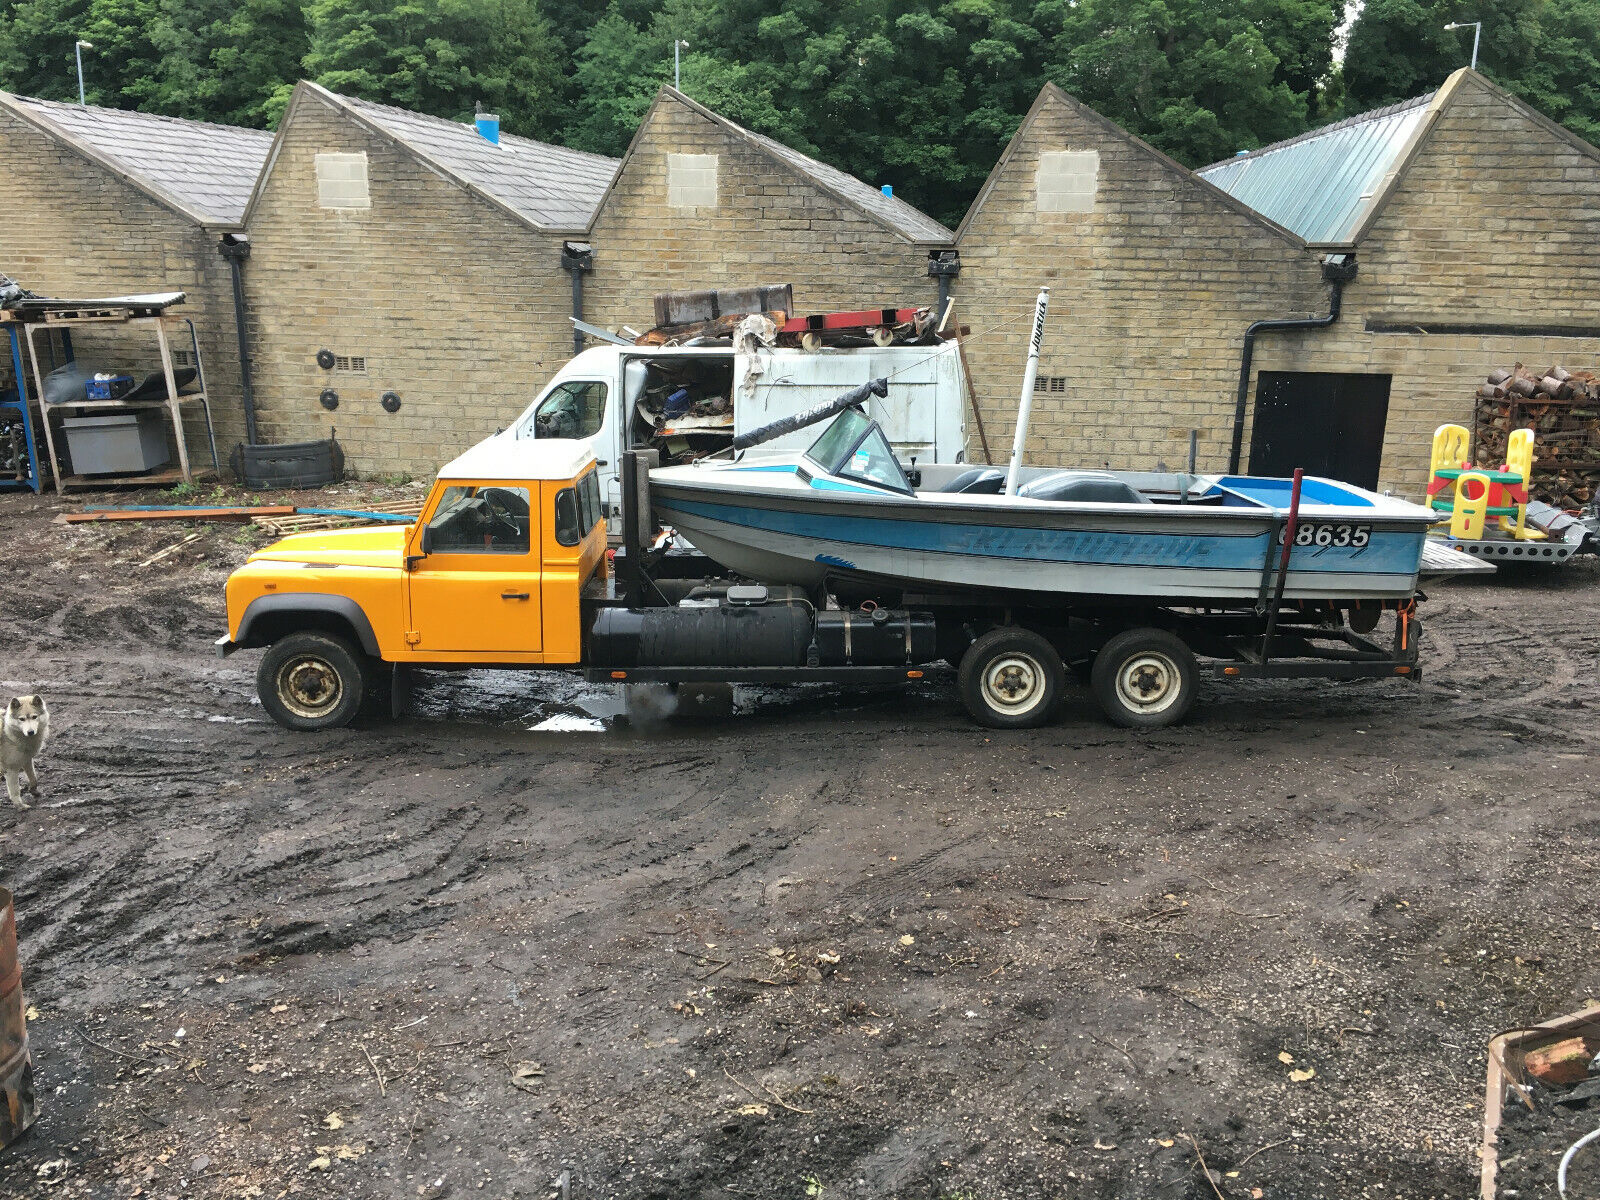 Land-rover-Defender-Stretch-6X4-boat-launcher-chassis